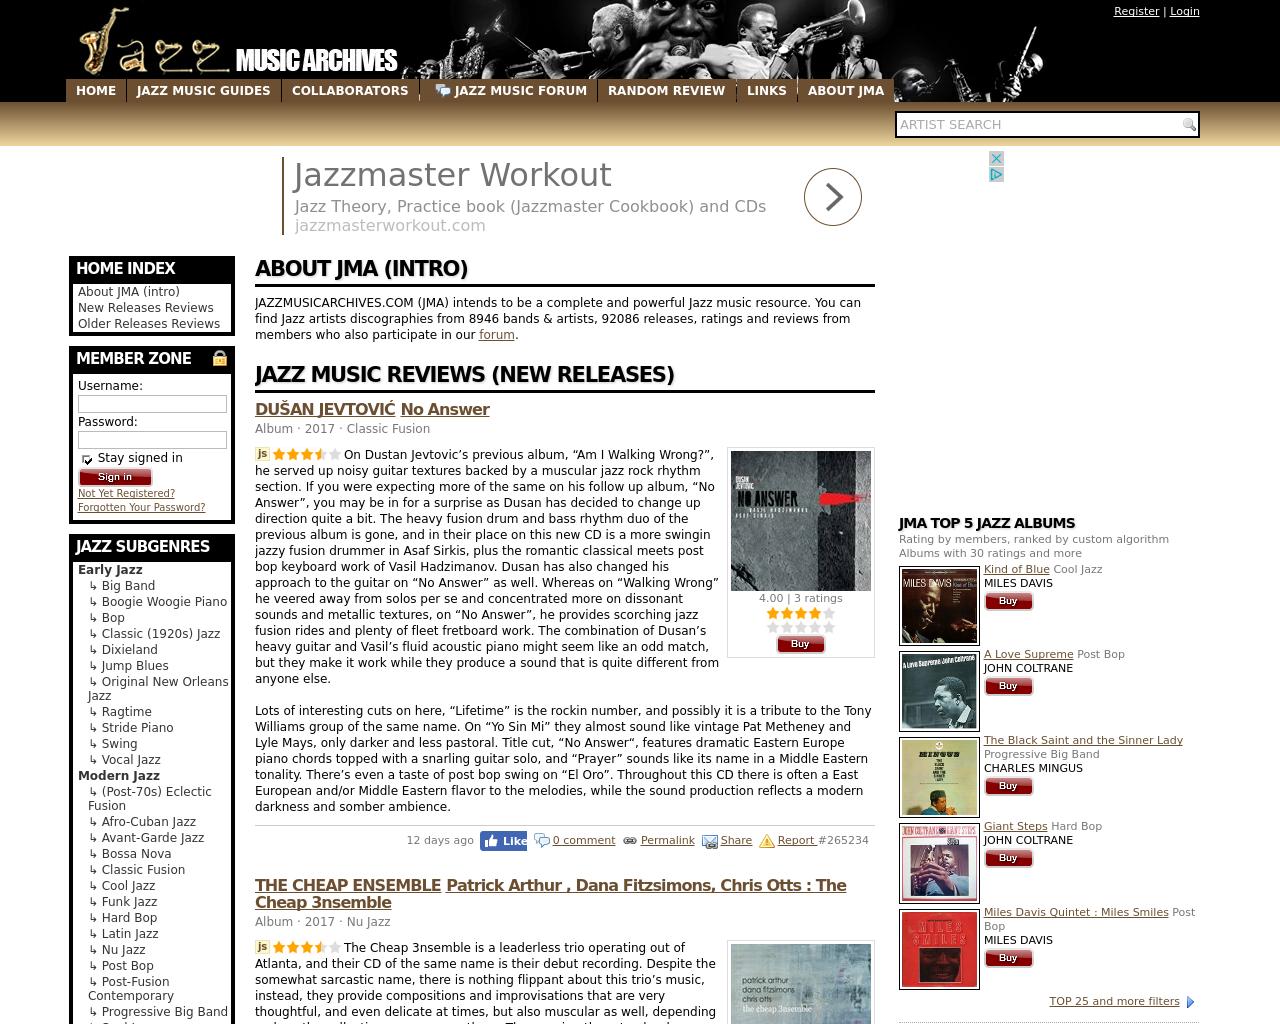 Jazz-Music-Archives-Advertising-Reviews-Pricing